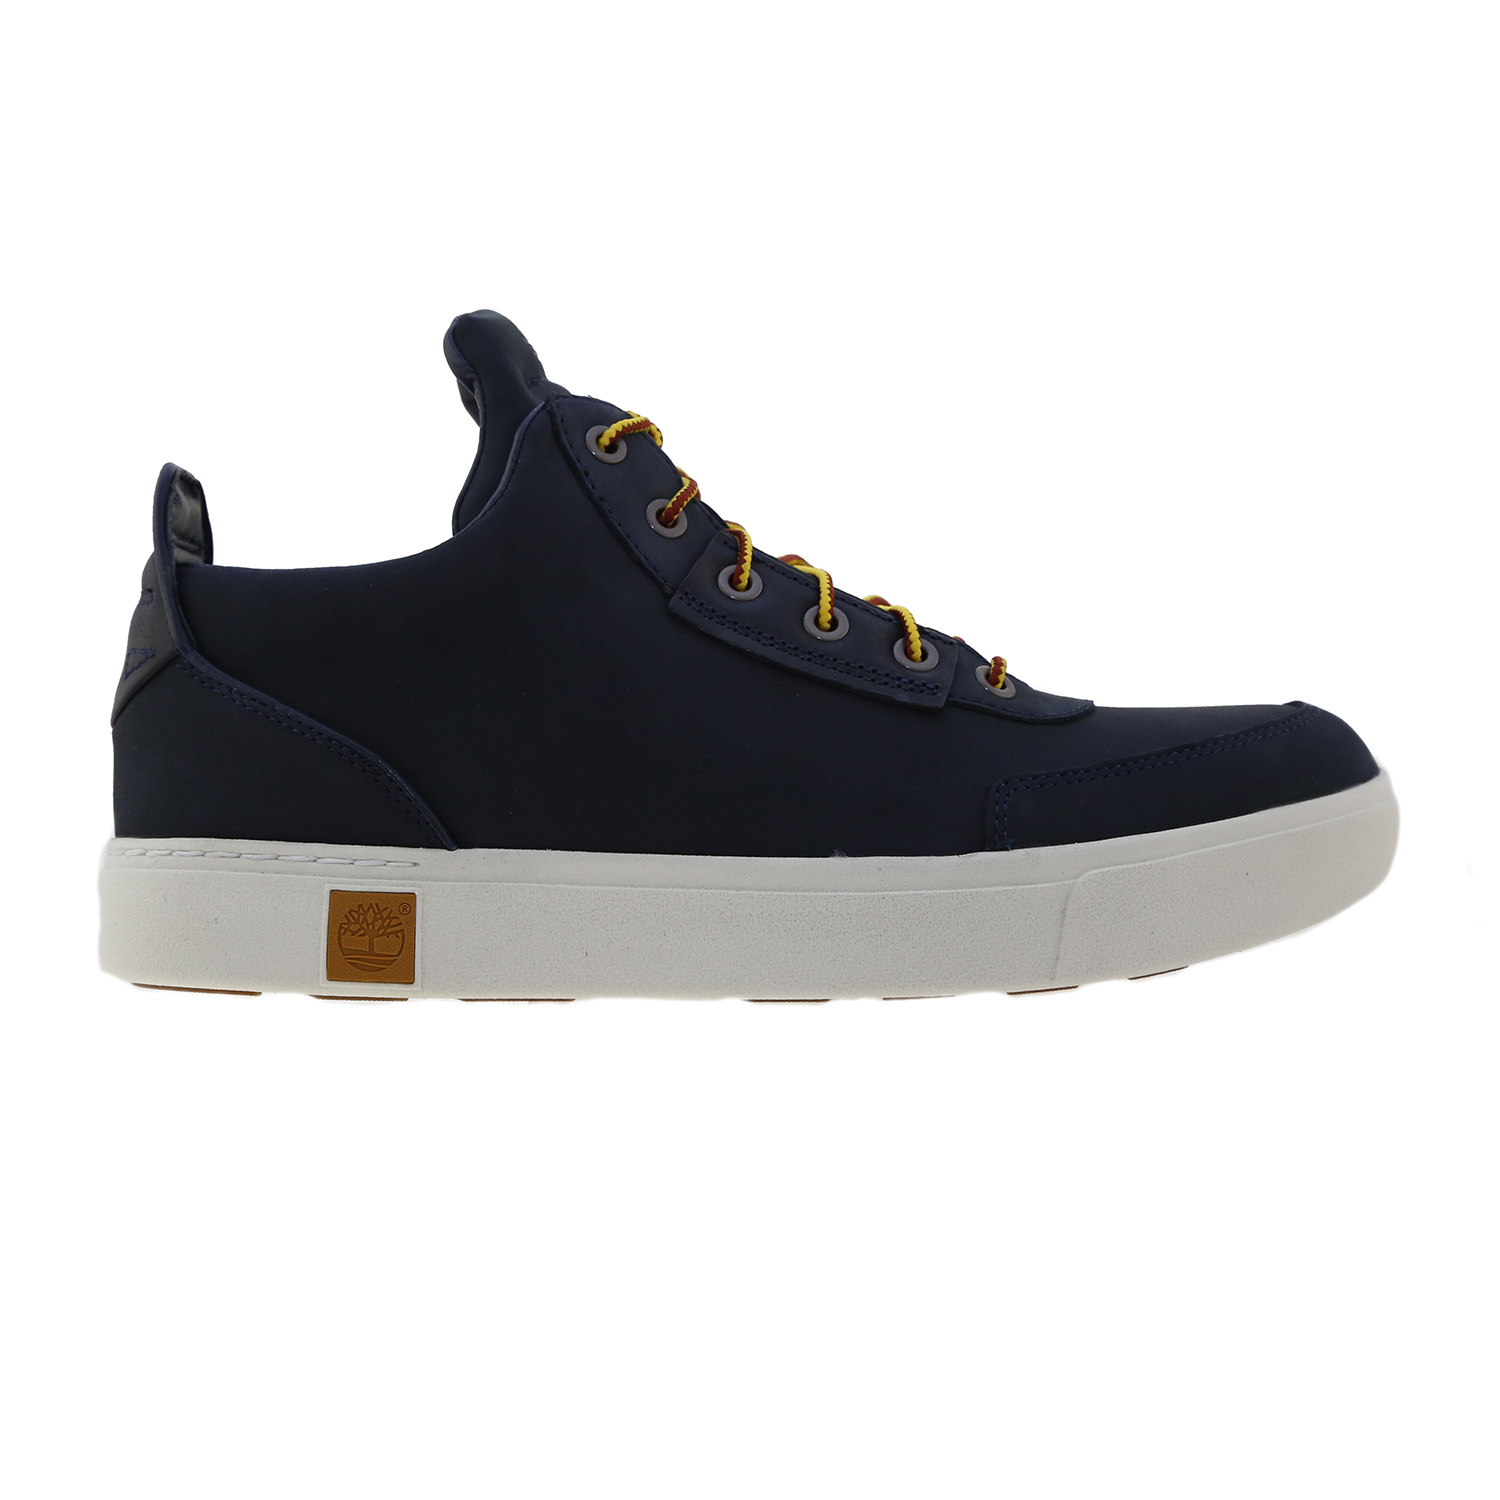 Timberland Amherst High Top Chukka M ( CA1G8O ) παπούτσια    άνδρας   lifestyle   casual